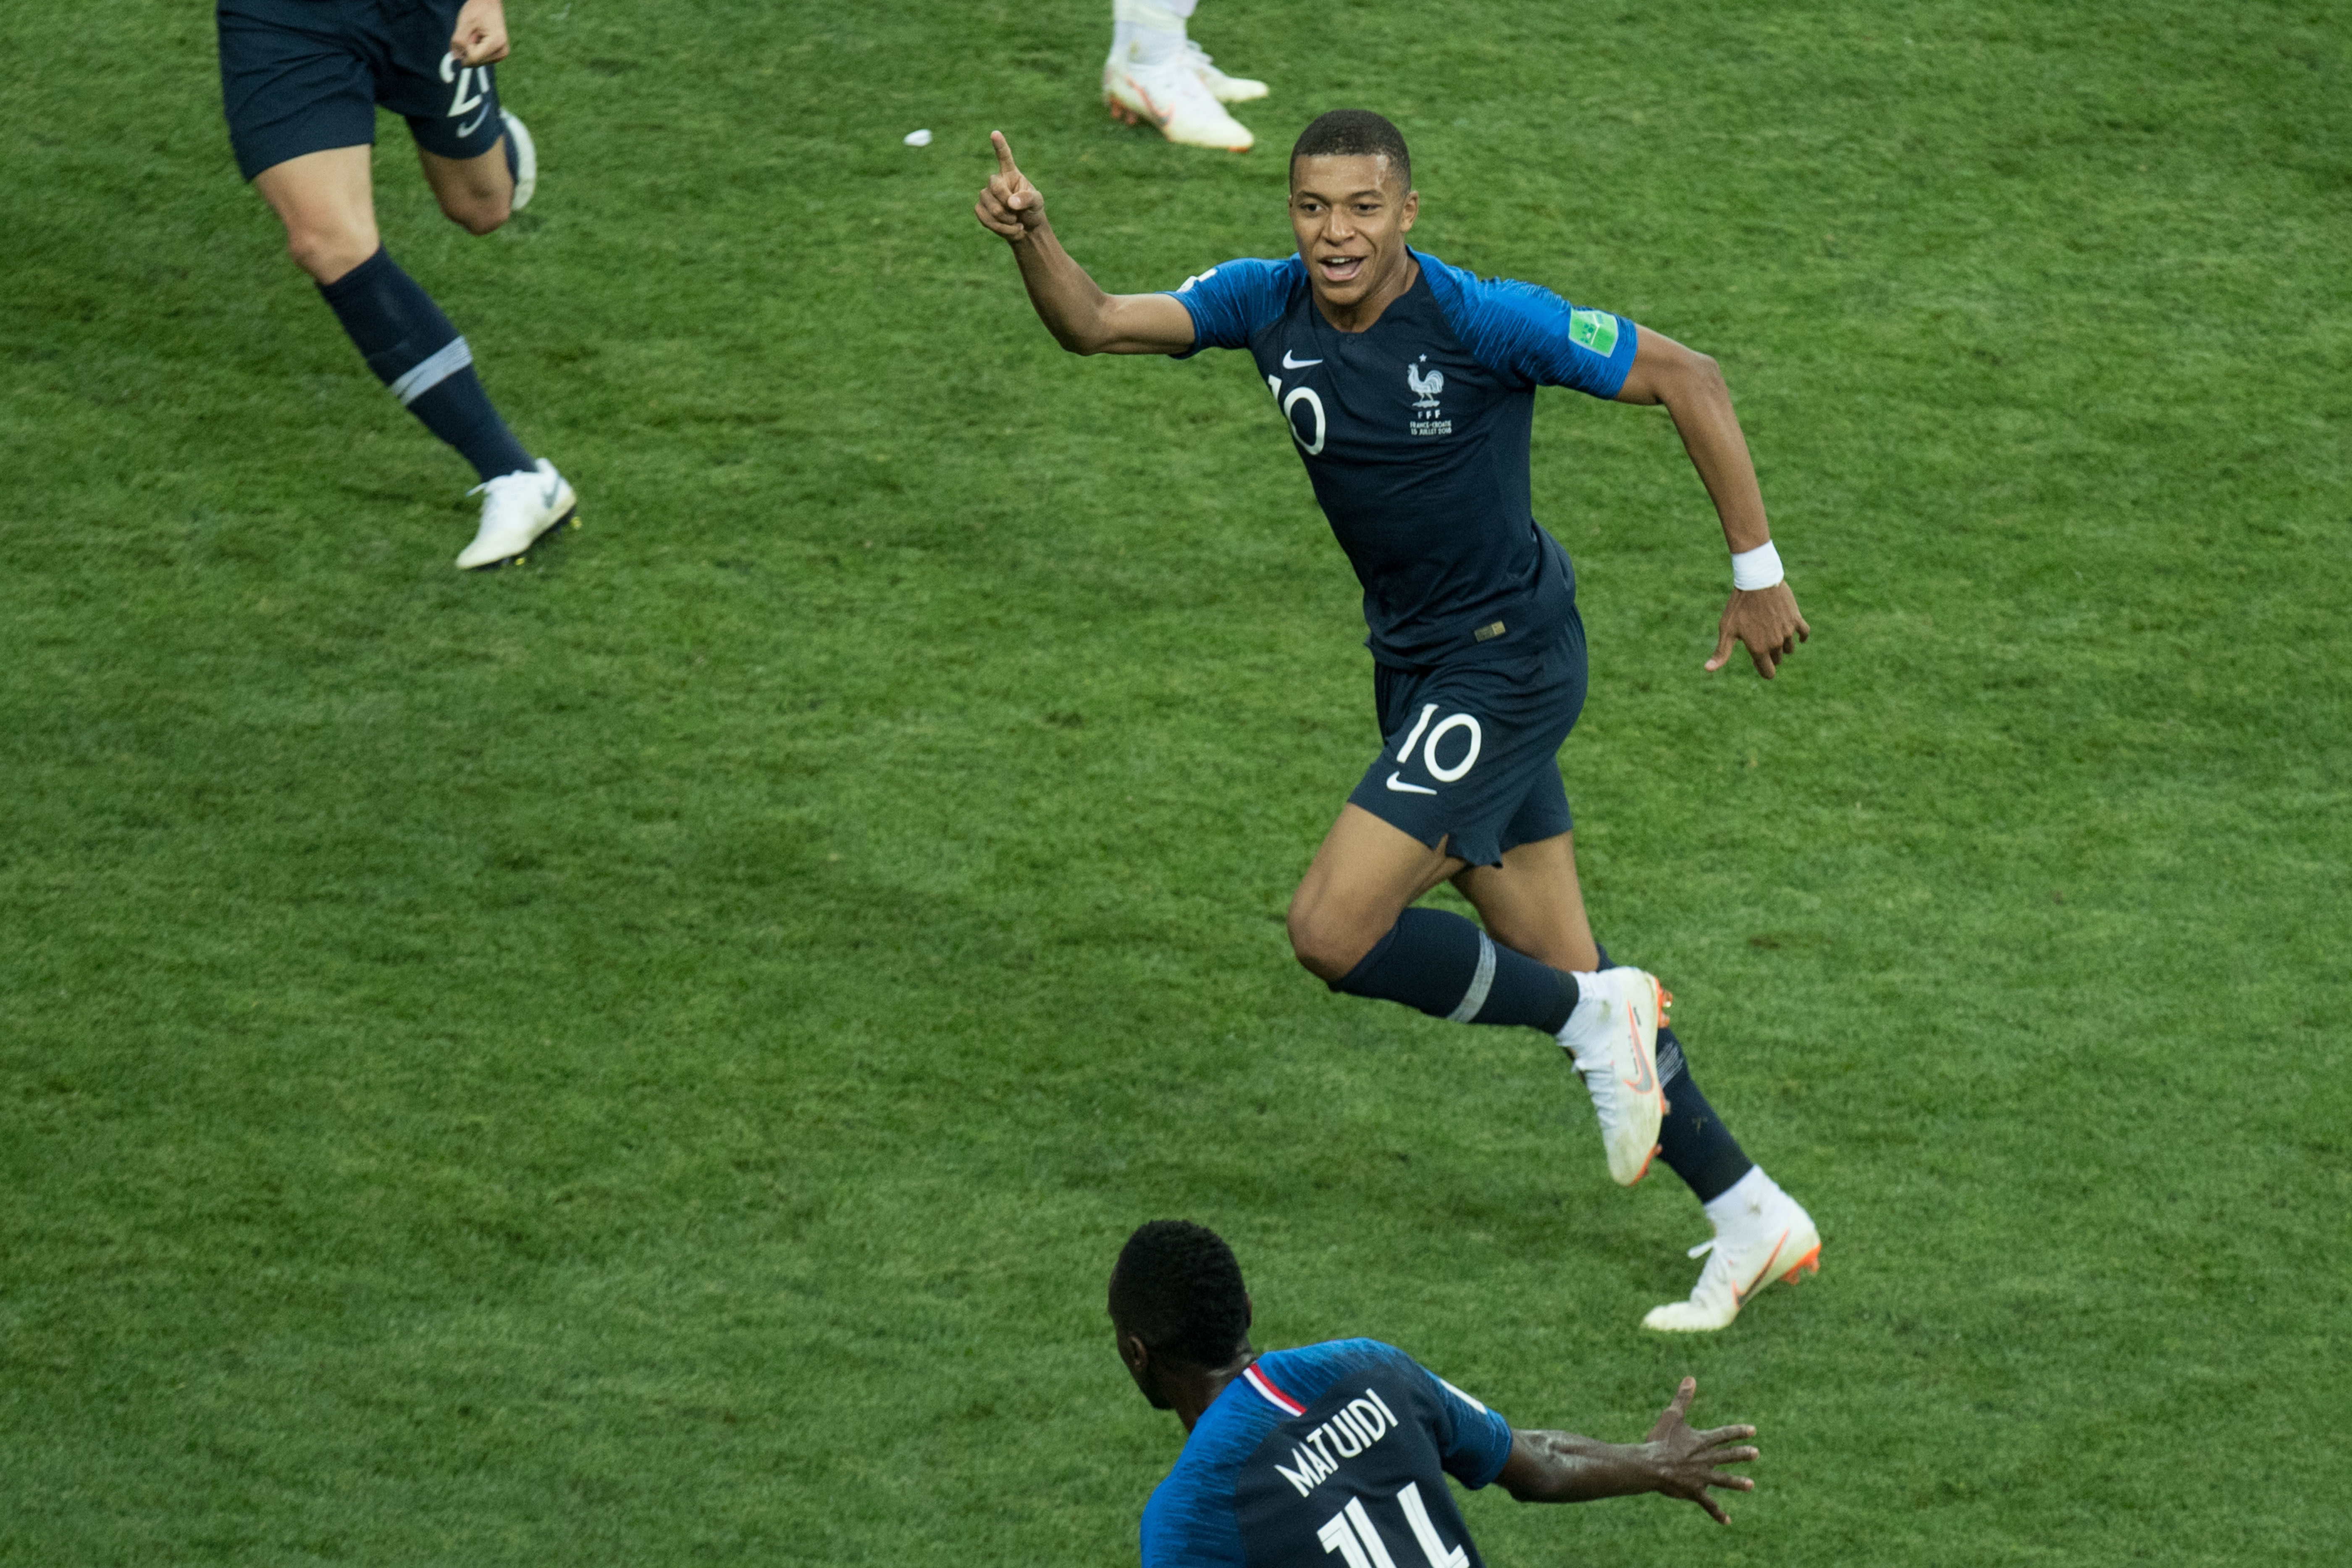 Mbappe has become one of the world's best, scoring in the World Cup final. Image: PA Images